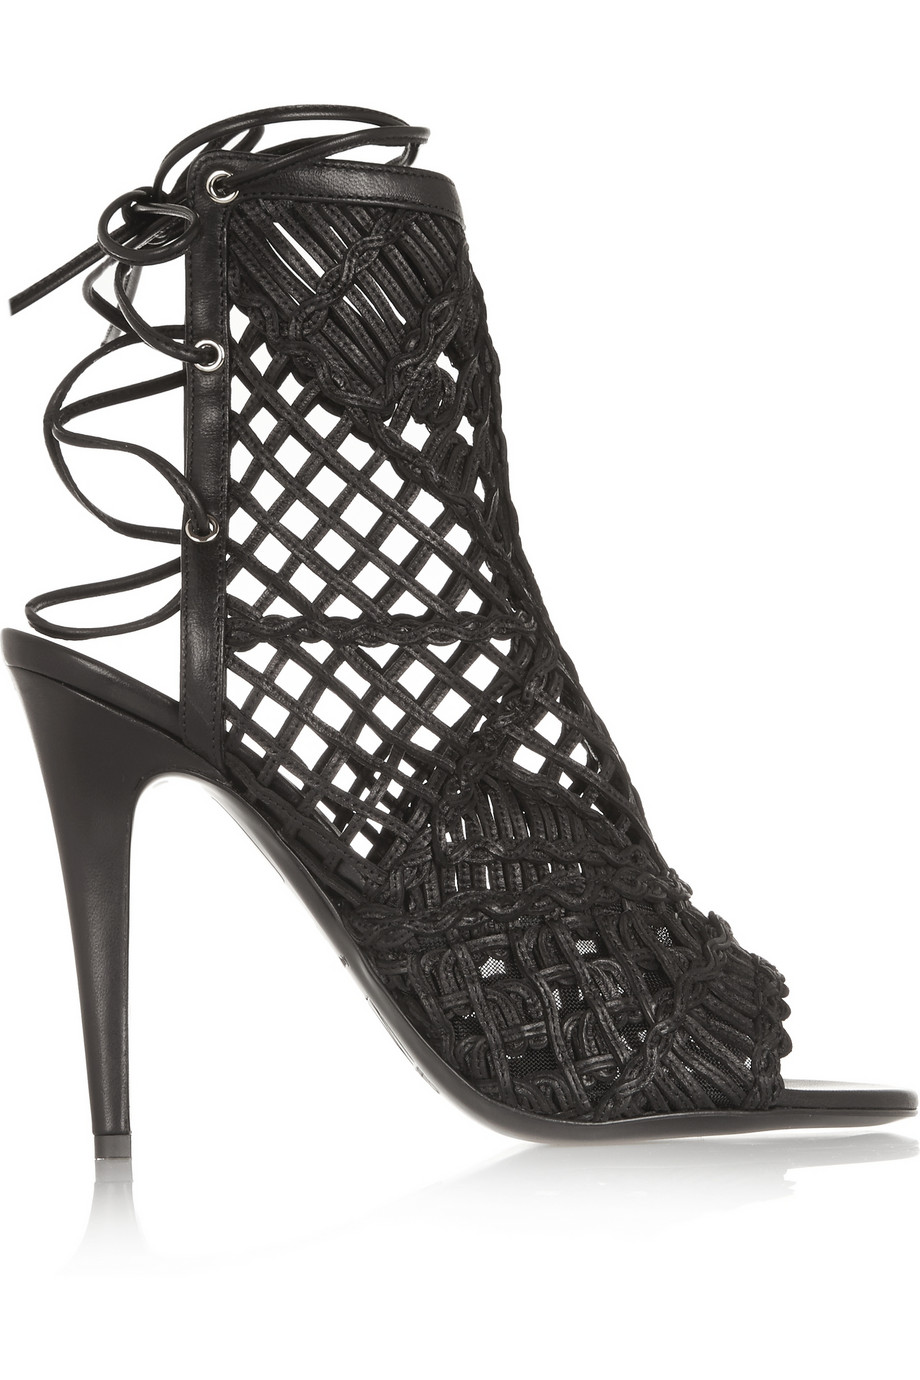 Tamara Mellon Black Widow Macramé Sandals $597.50